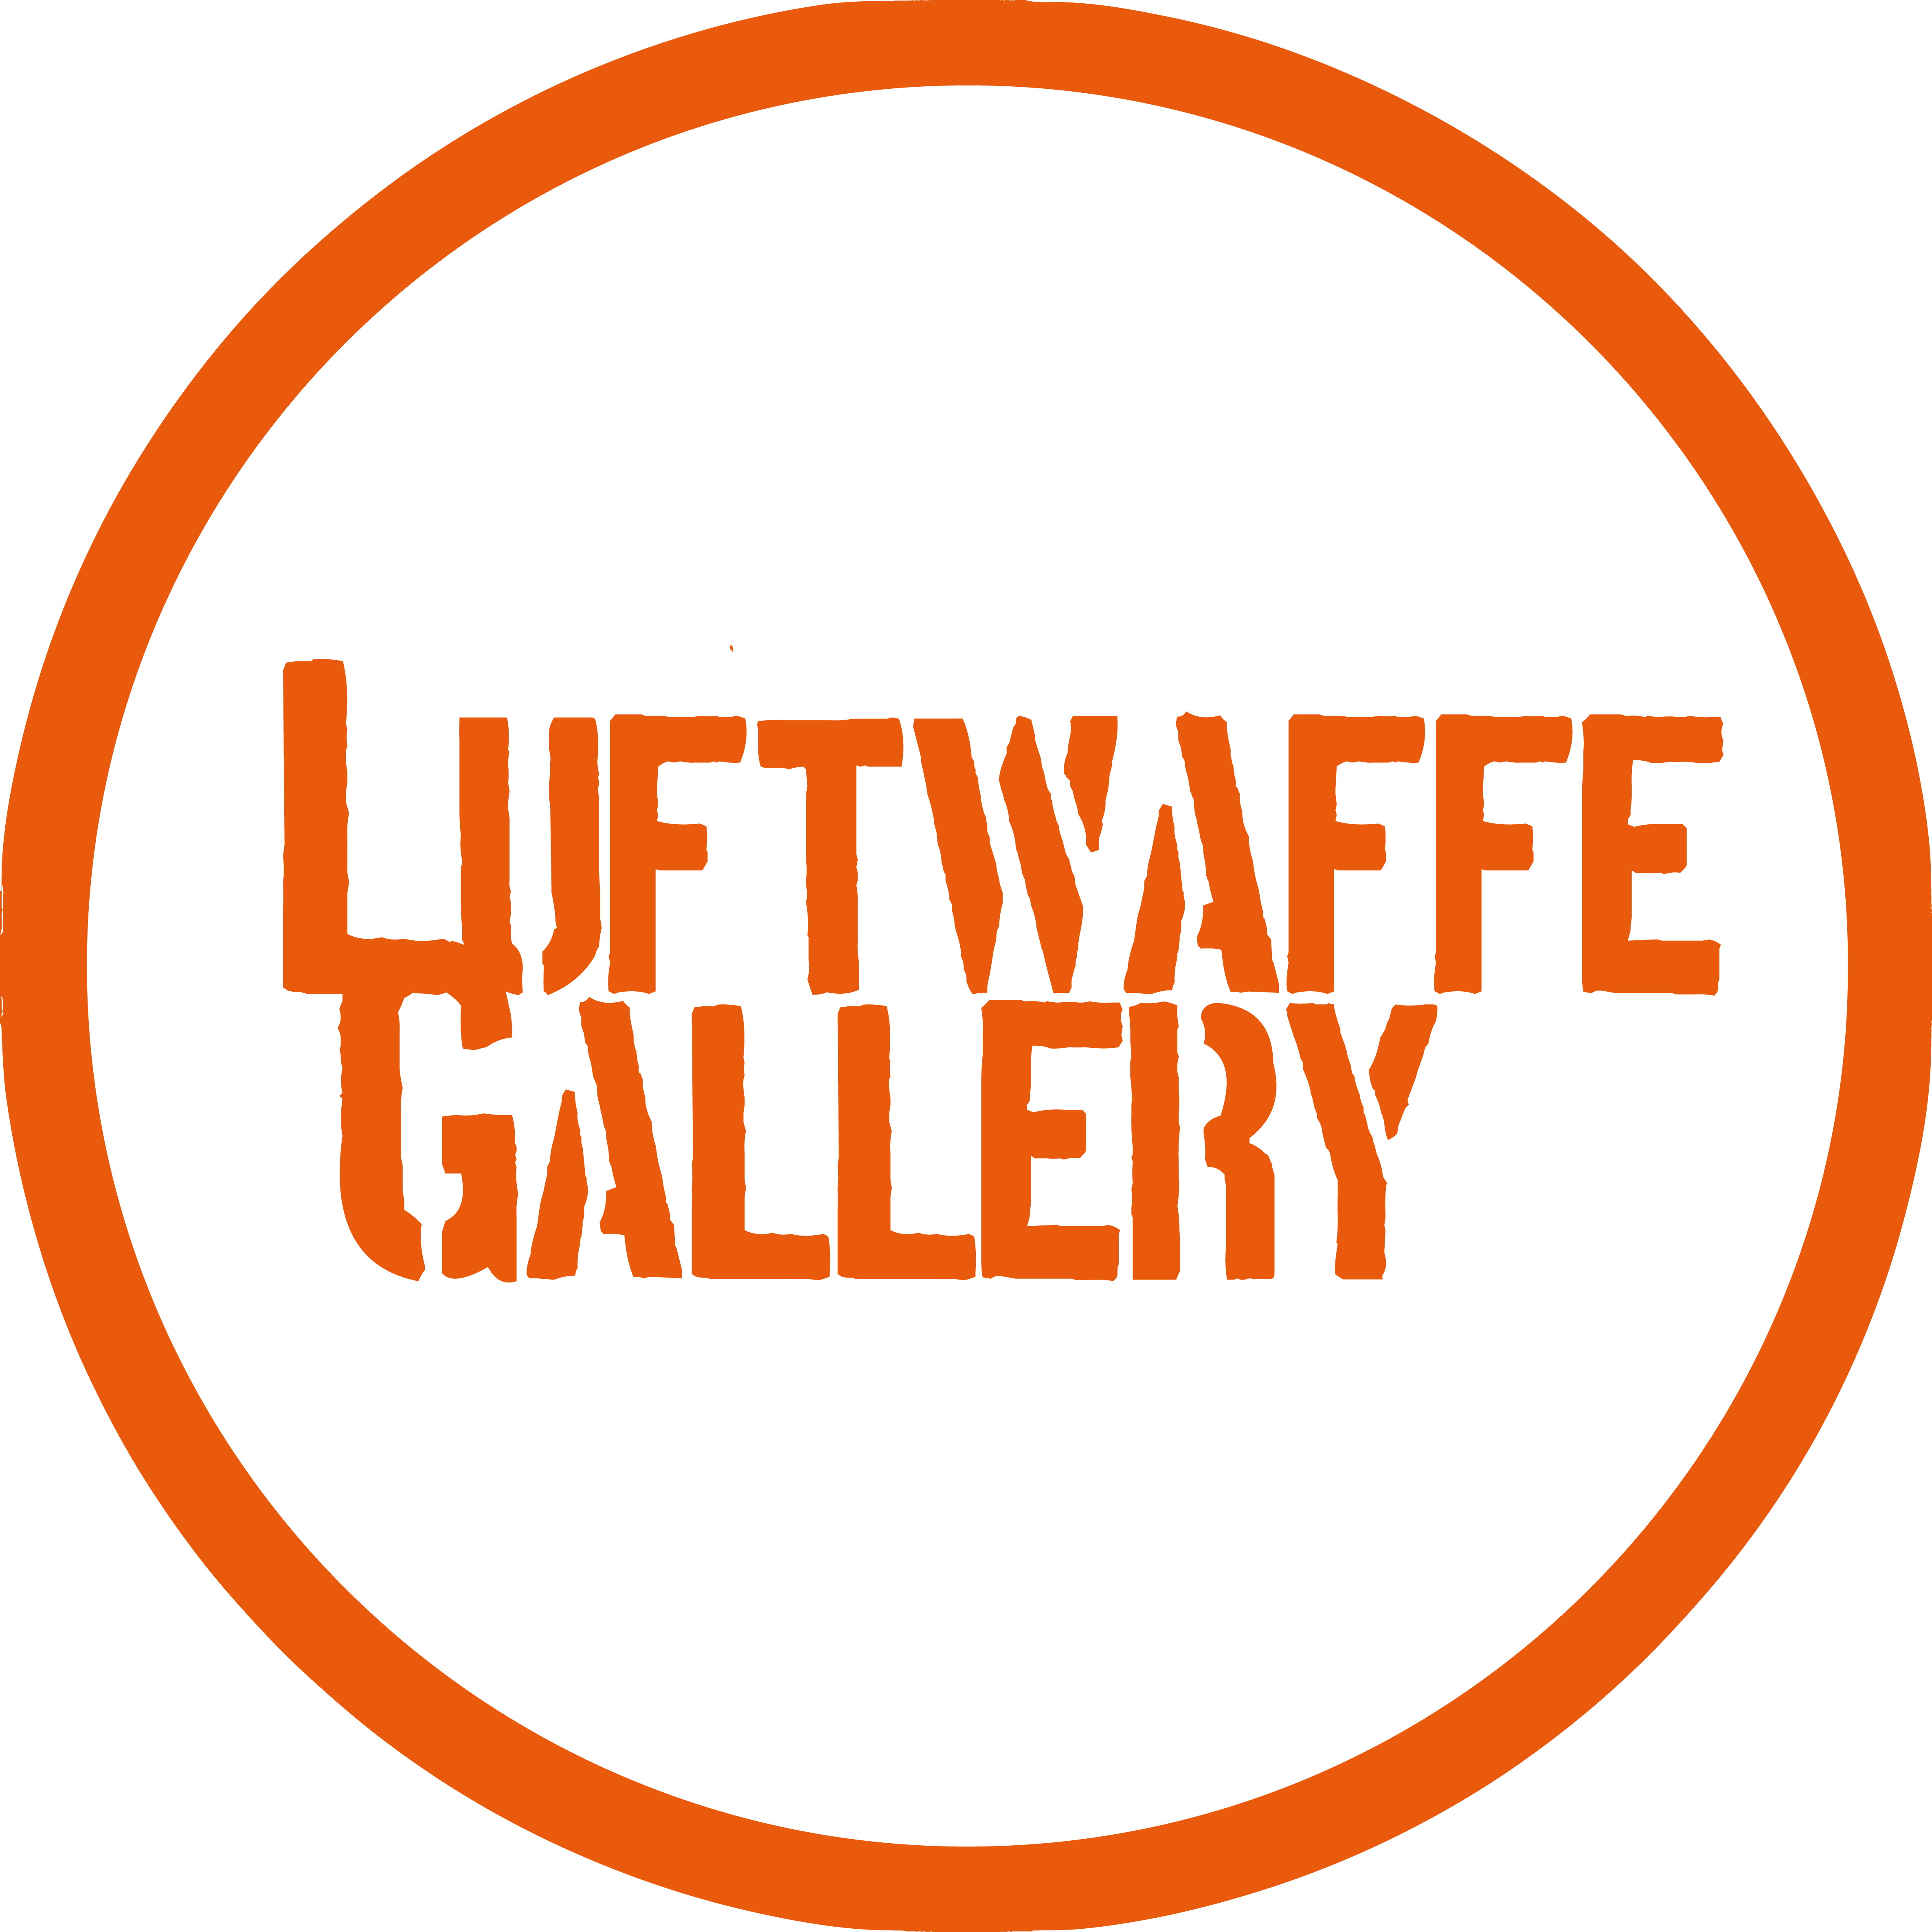 luftwaffergallery AK-INTERACTIVE